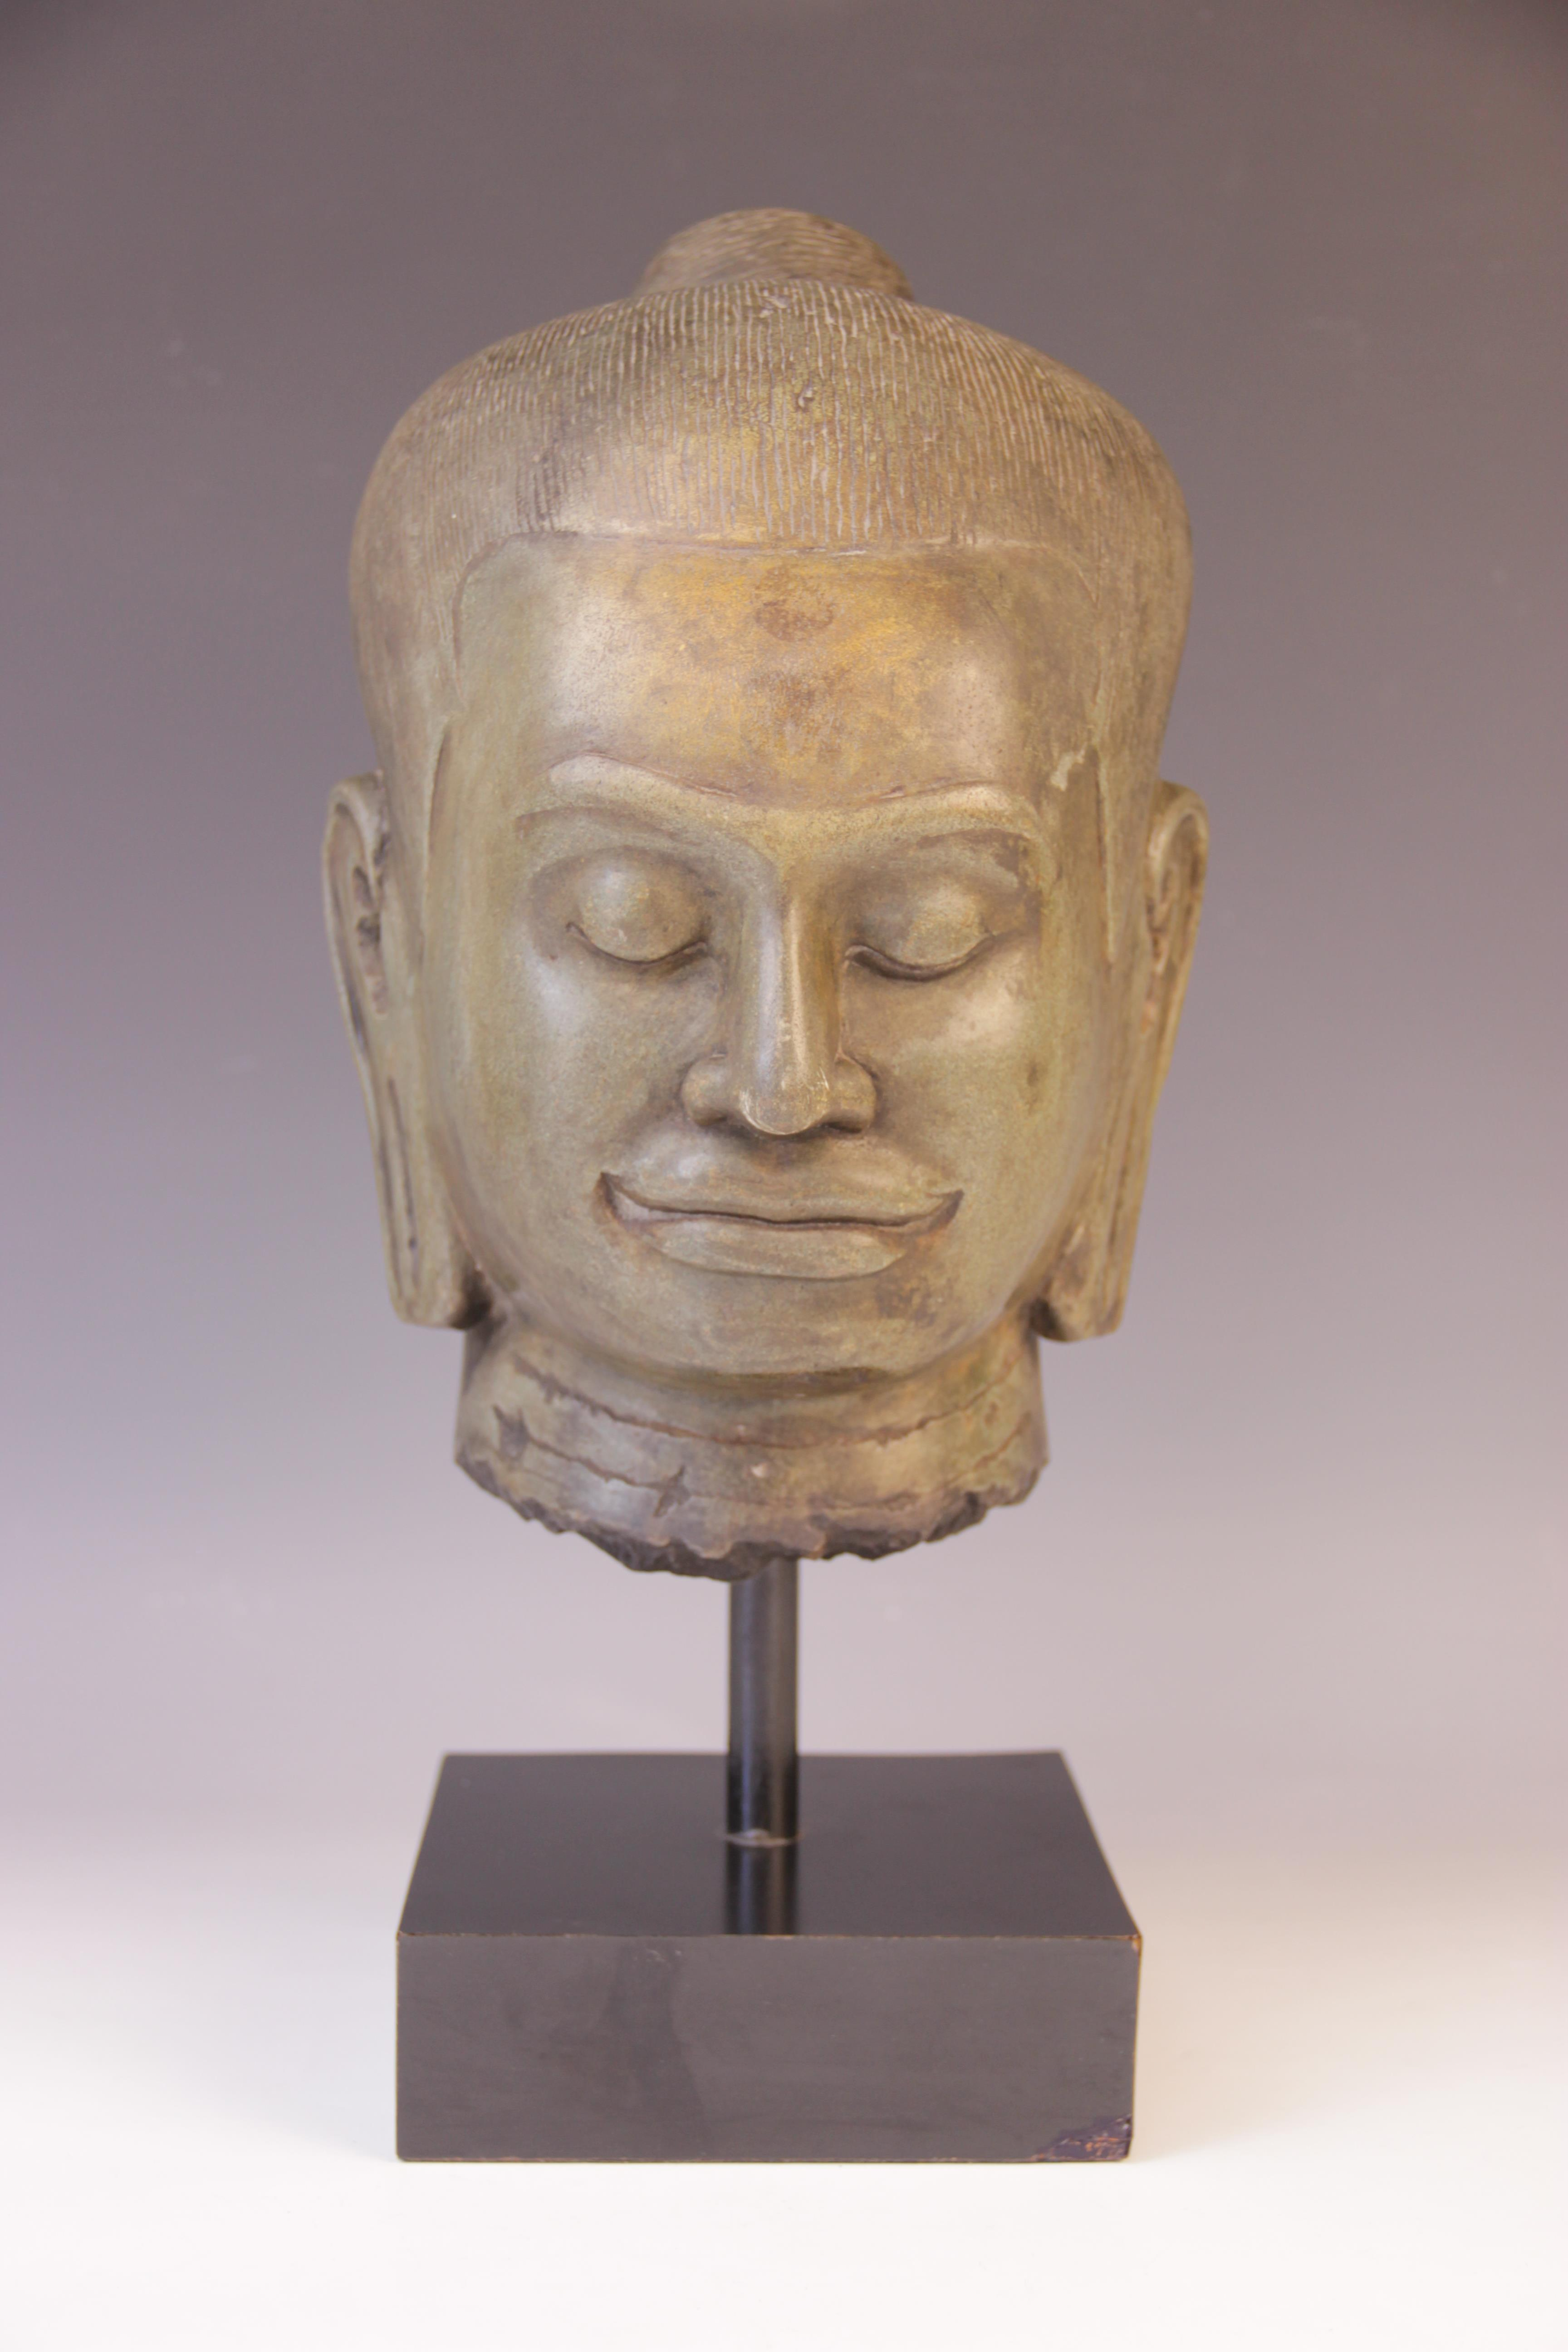 A Verdigris bronzed head of Guanyin, 20th century, modelled upon a stand, 41cm high